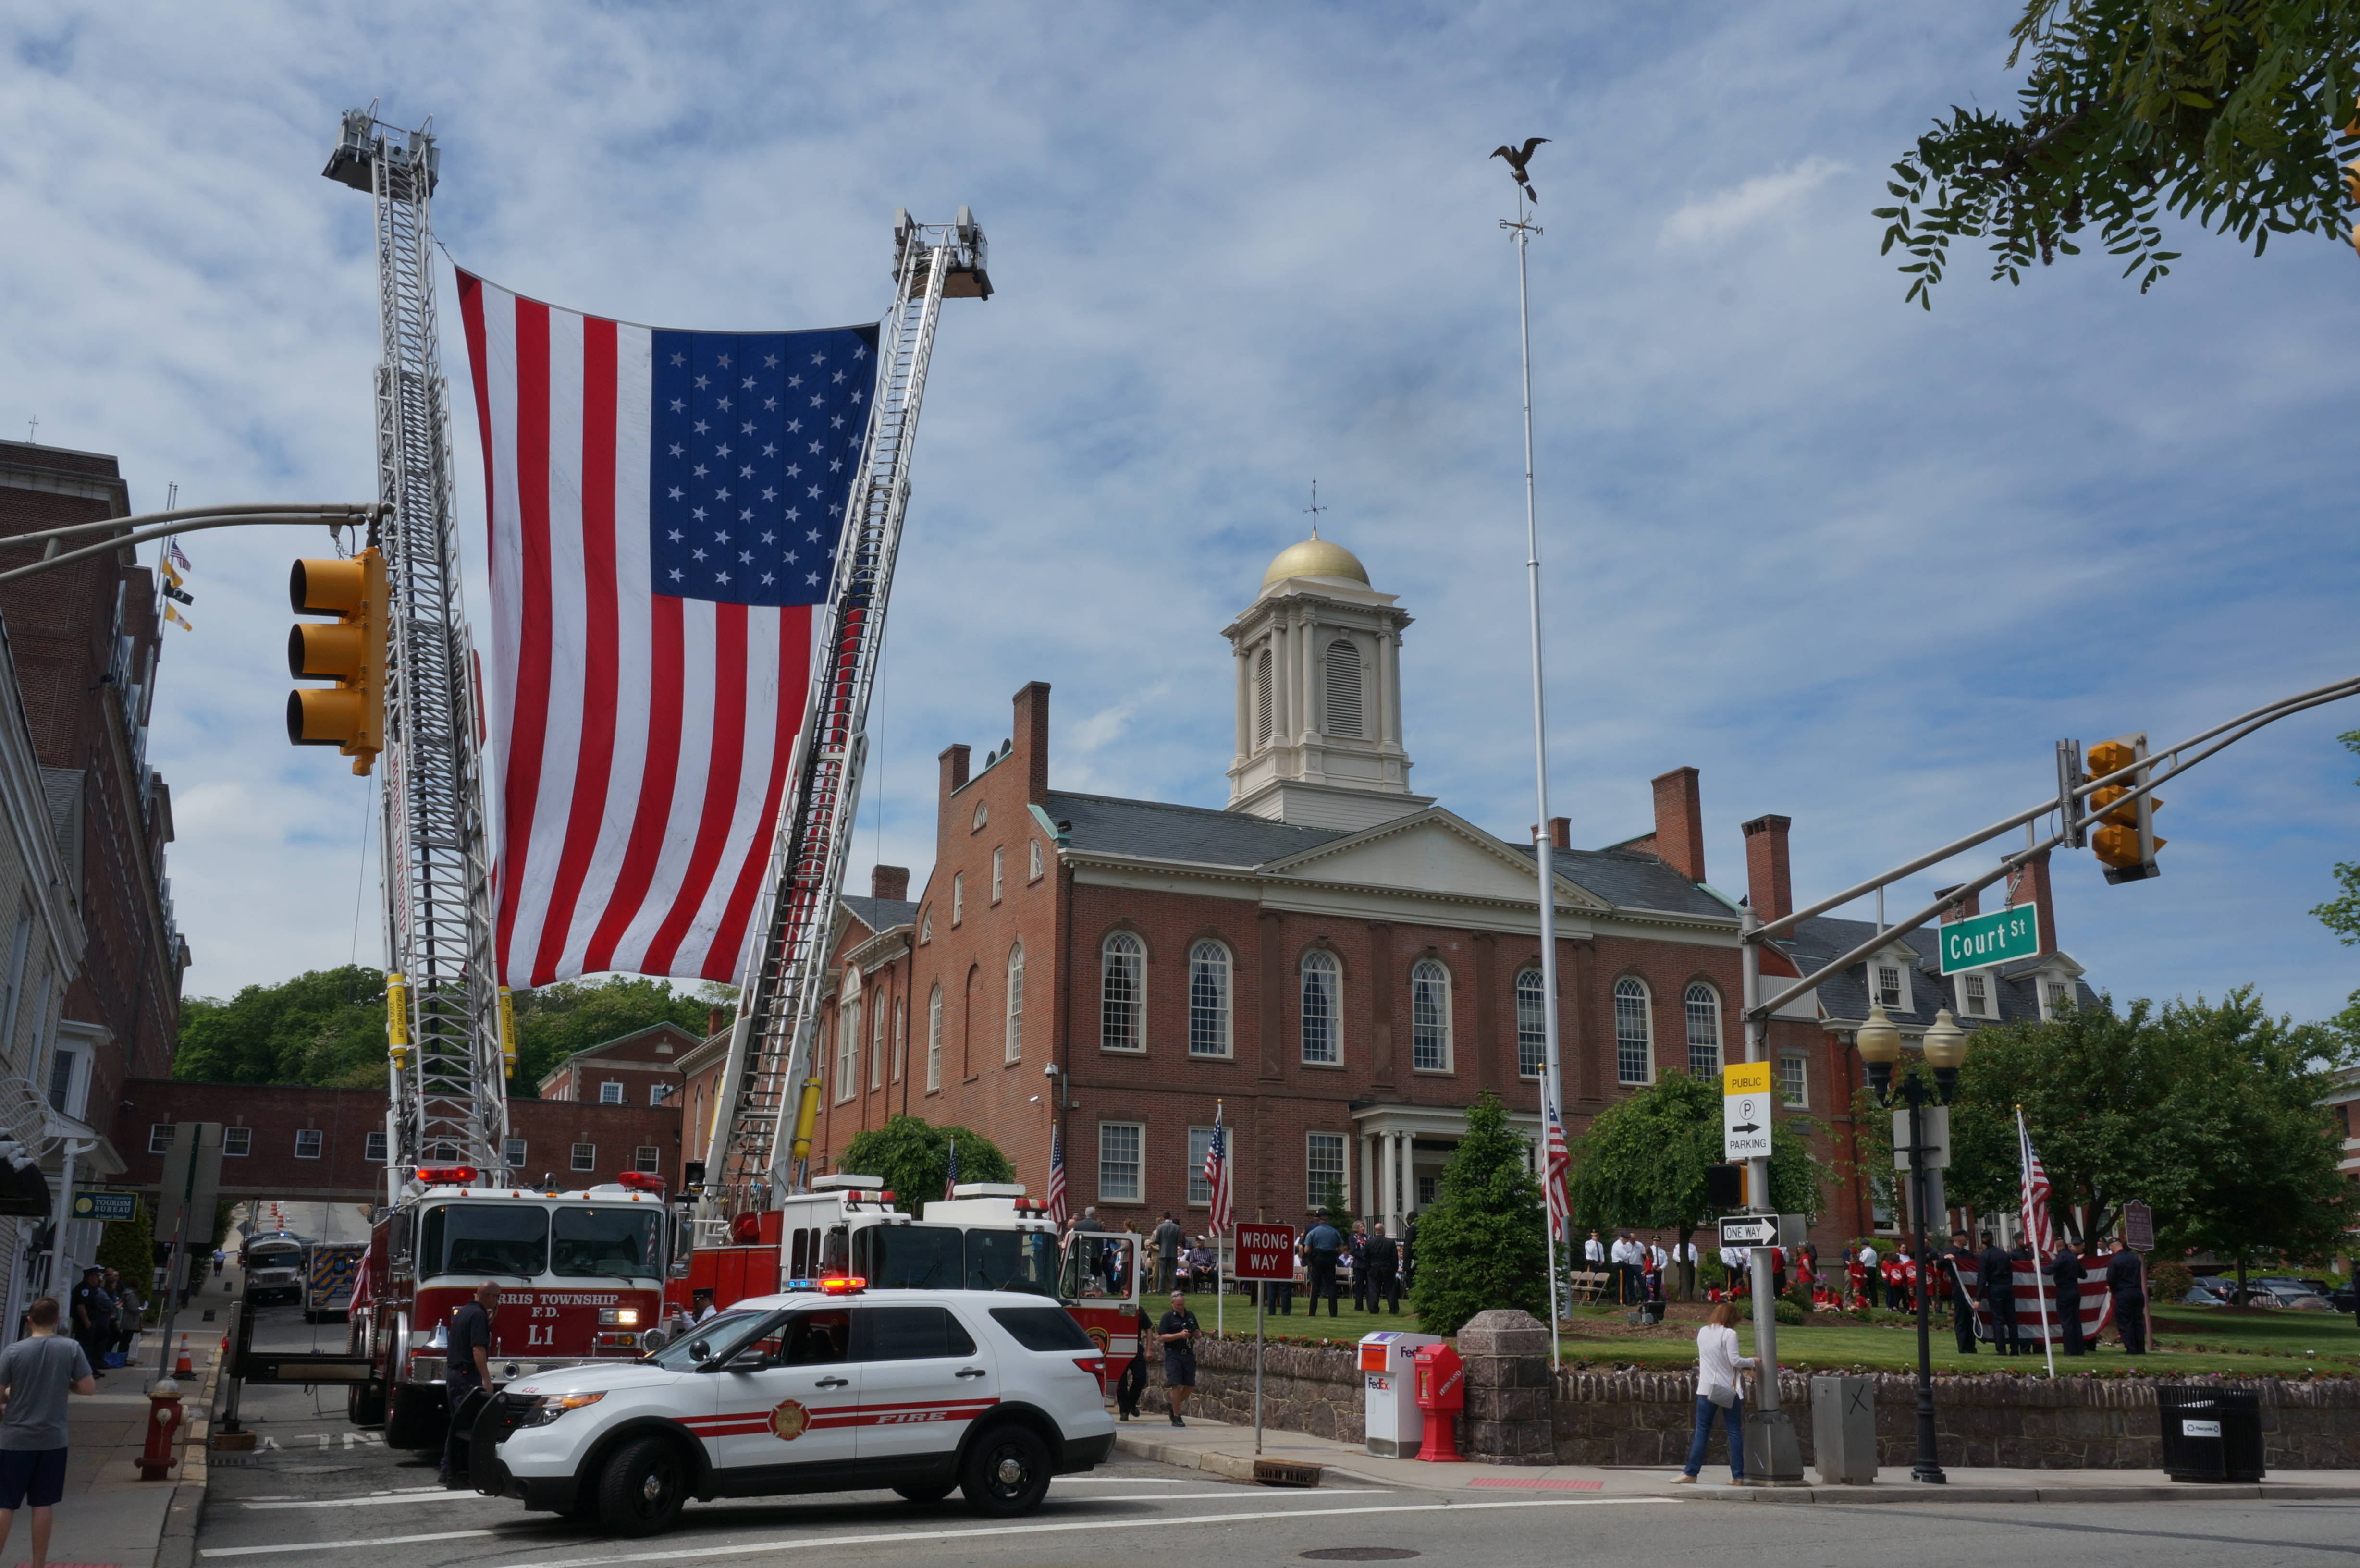 8dca59ab6593278d75af_a_The_Morris_County_Courthouse.JPG